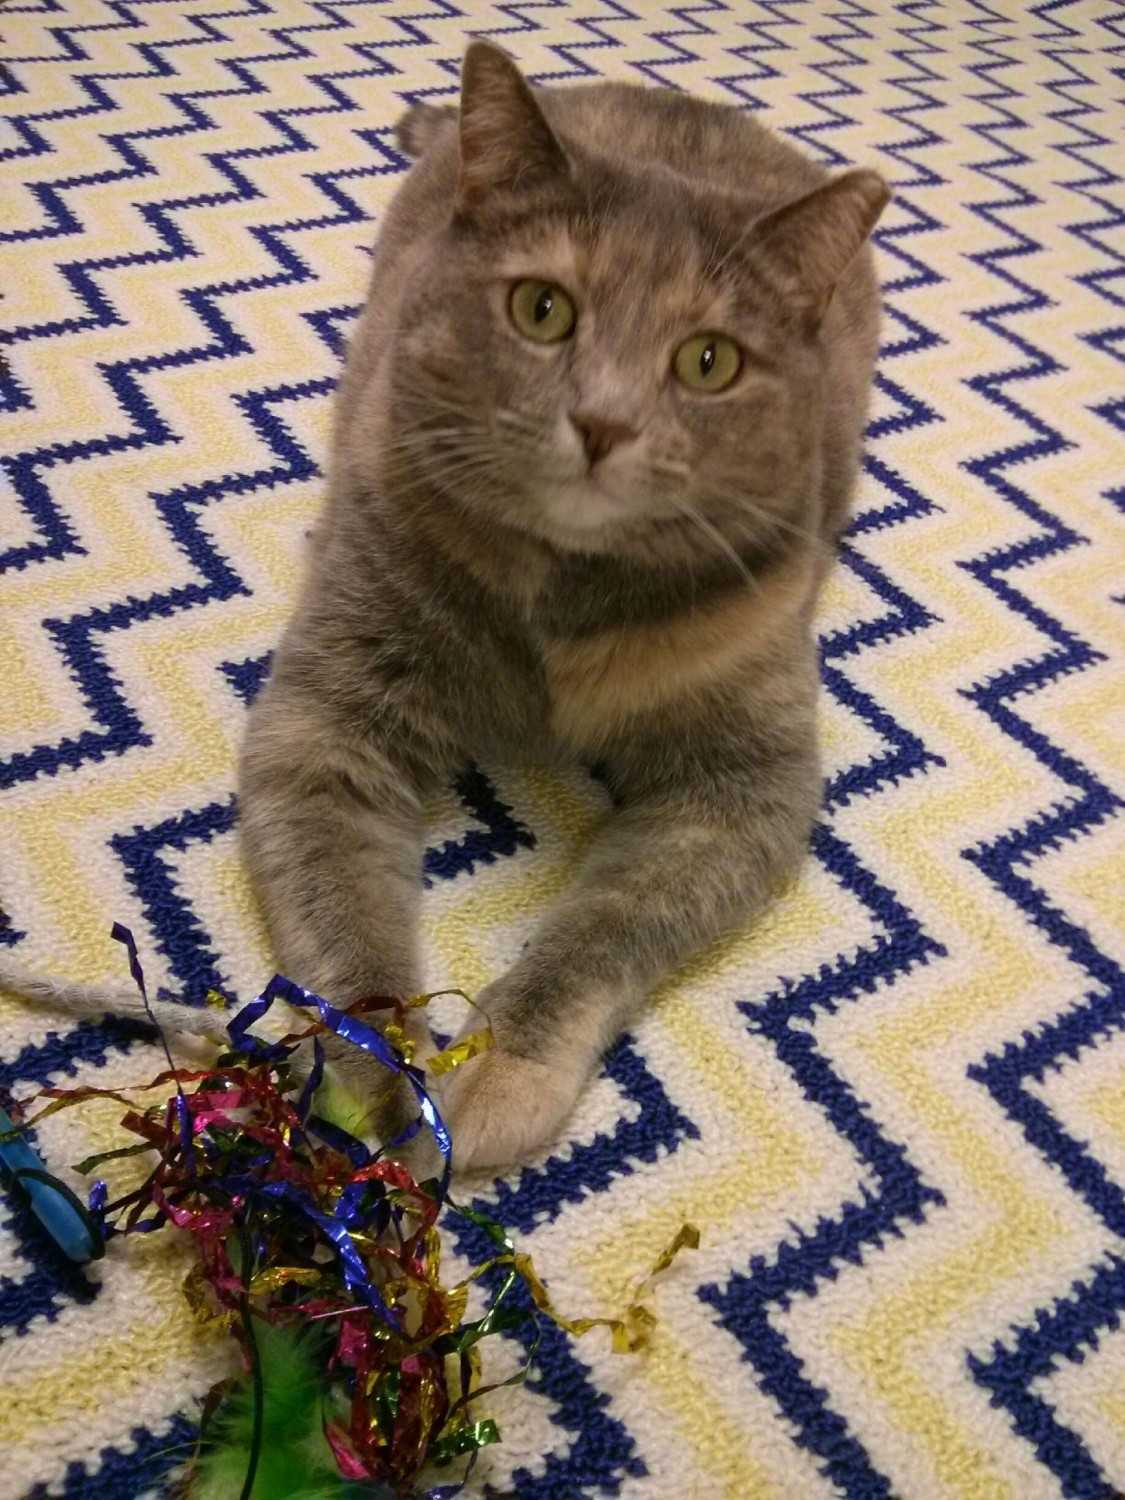 Myrna, one of our clinic cats, posing on the new rug